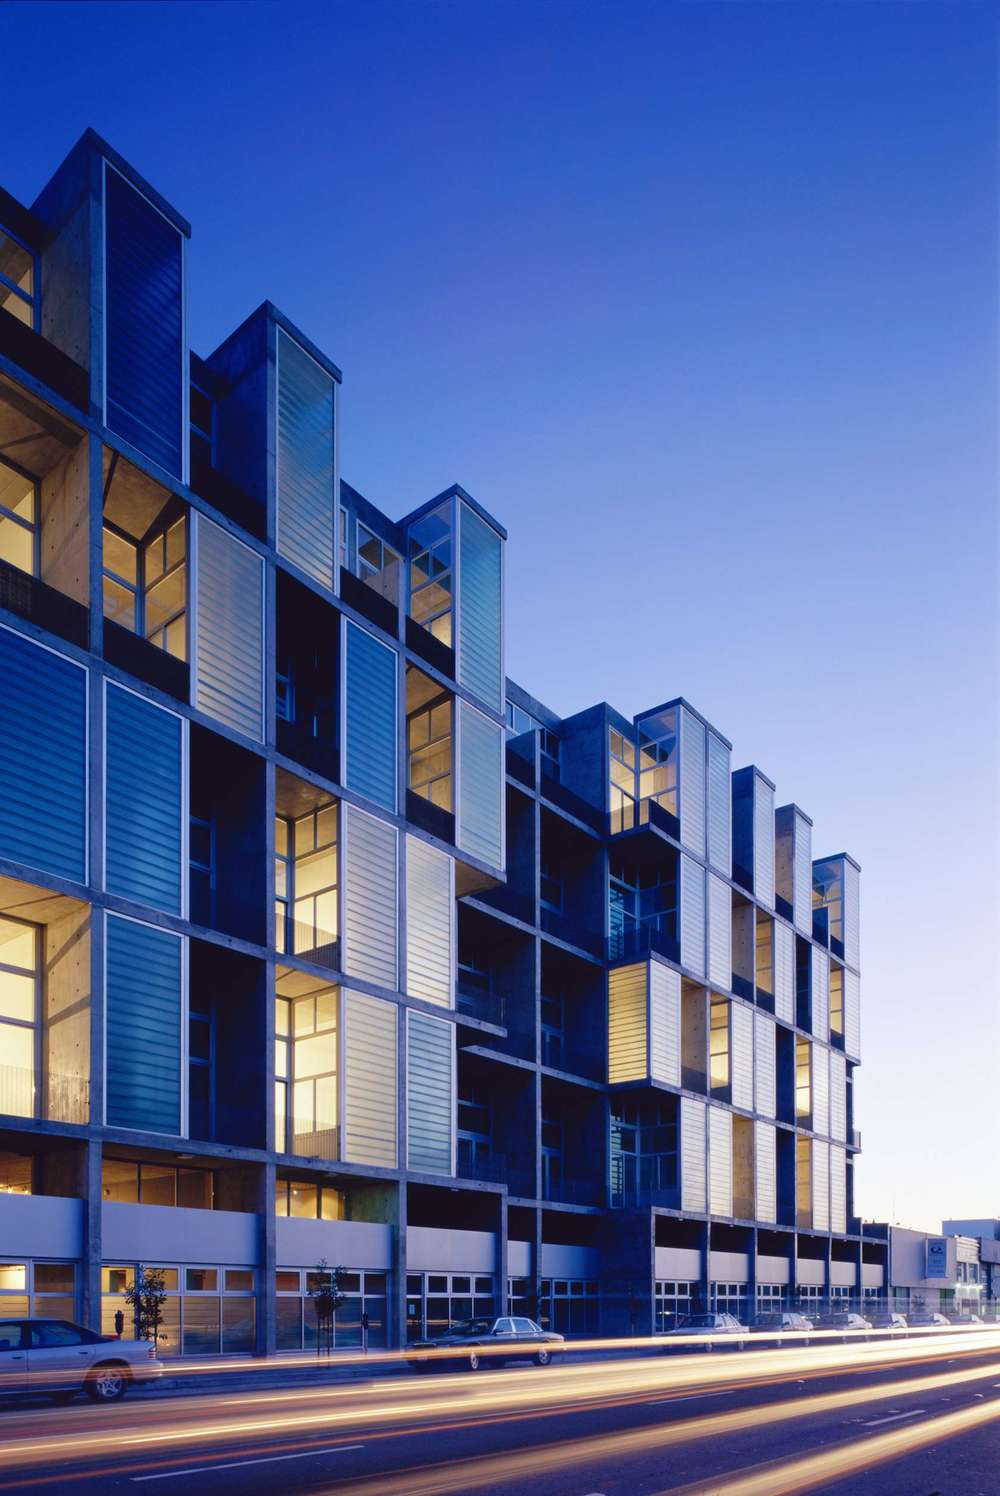 The Stanley Saitowitz-designed Yerba Buena Lofts earned an AIA Design Excellence Award.